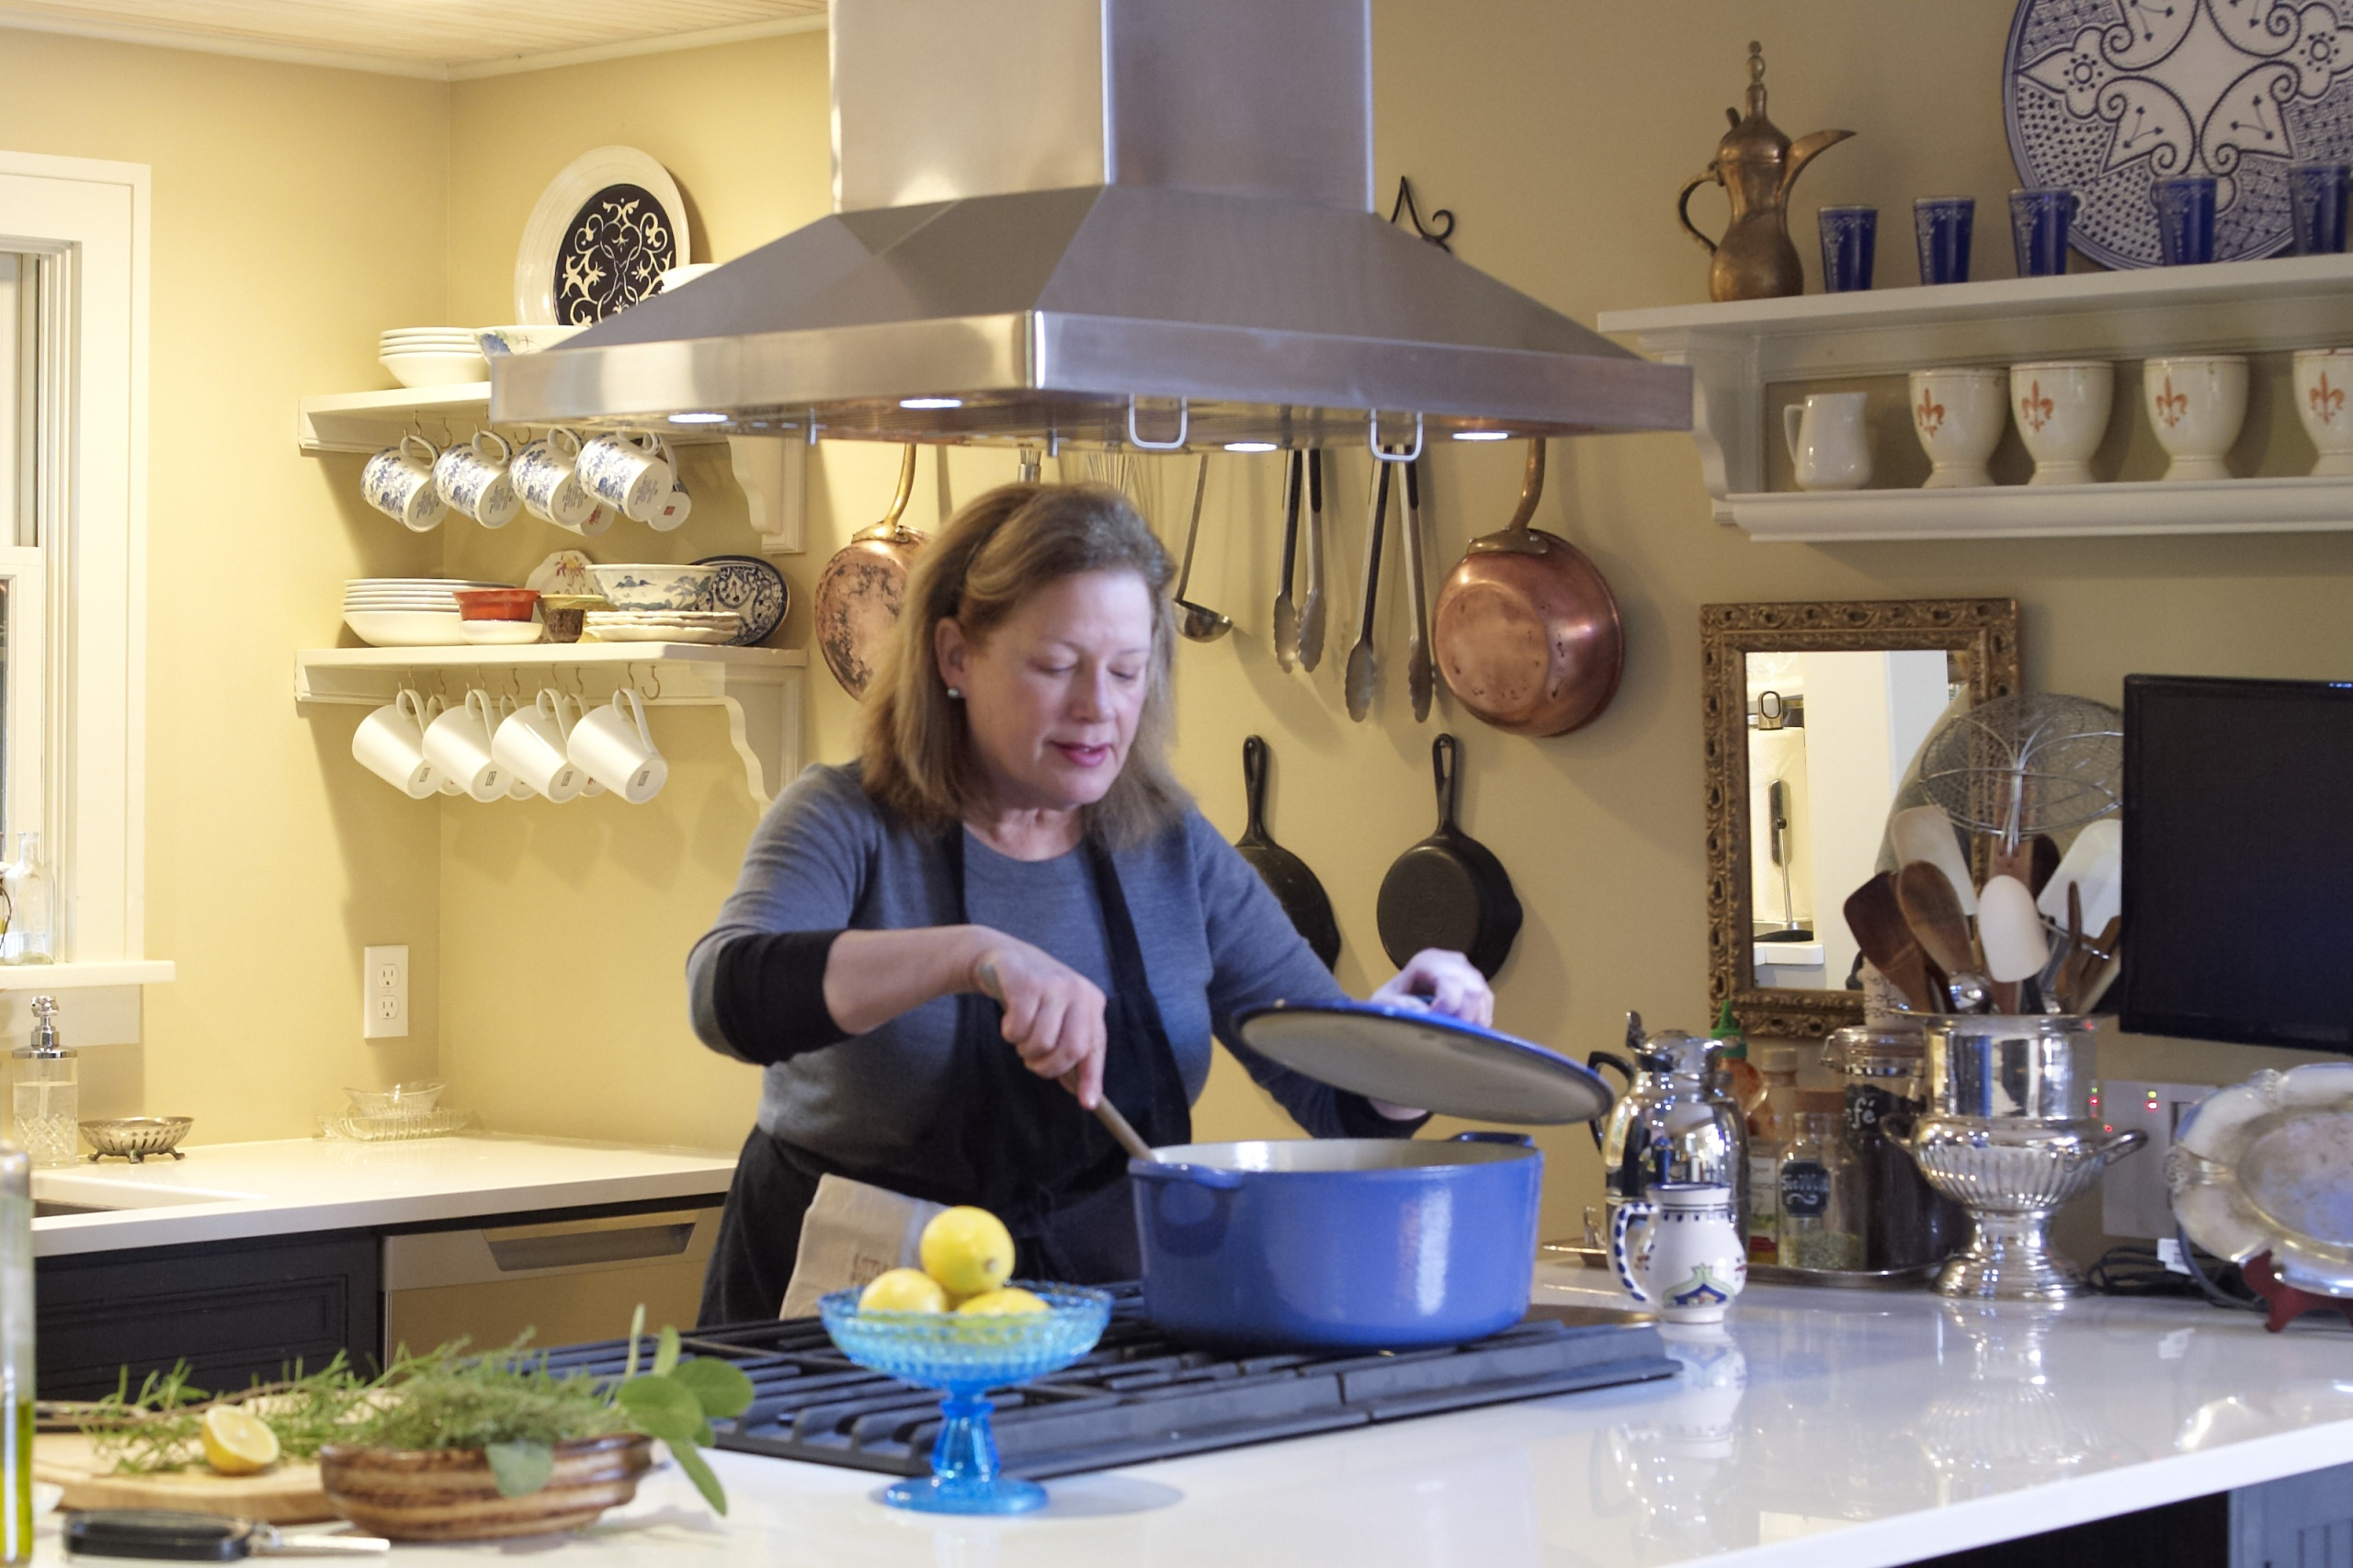 Chef Alysa Plummer's home kitchen